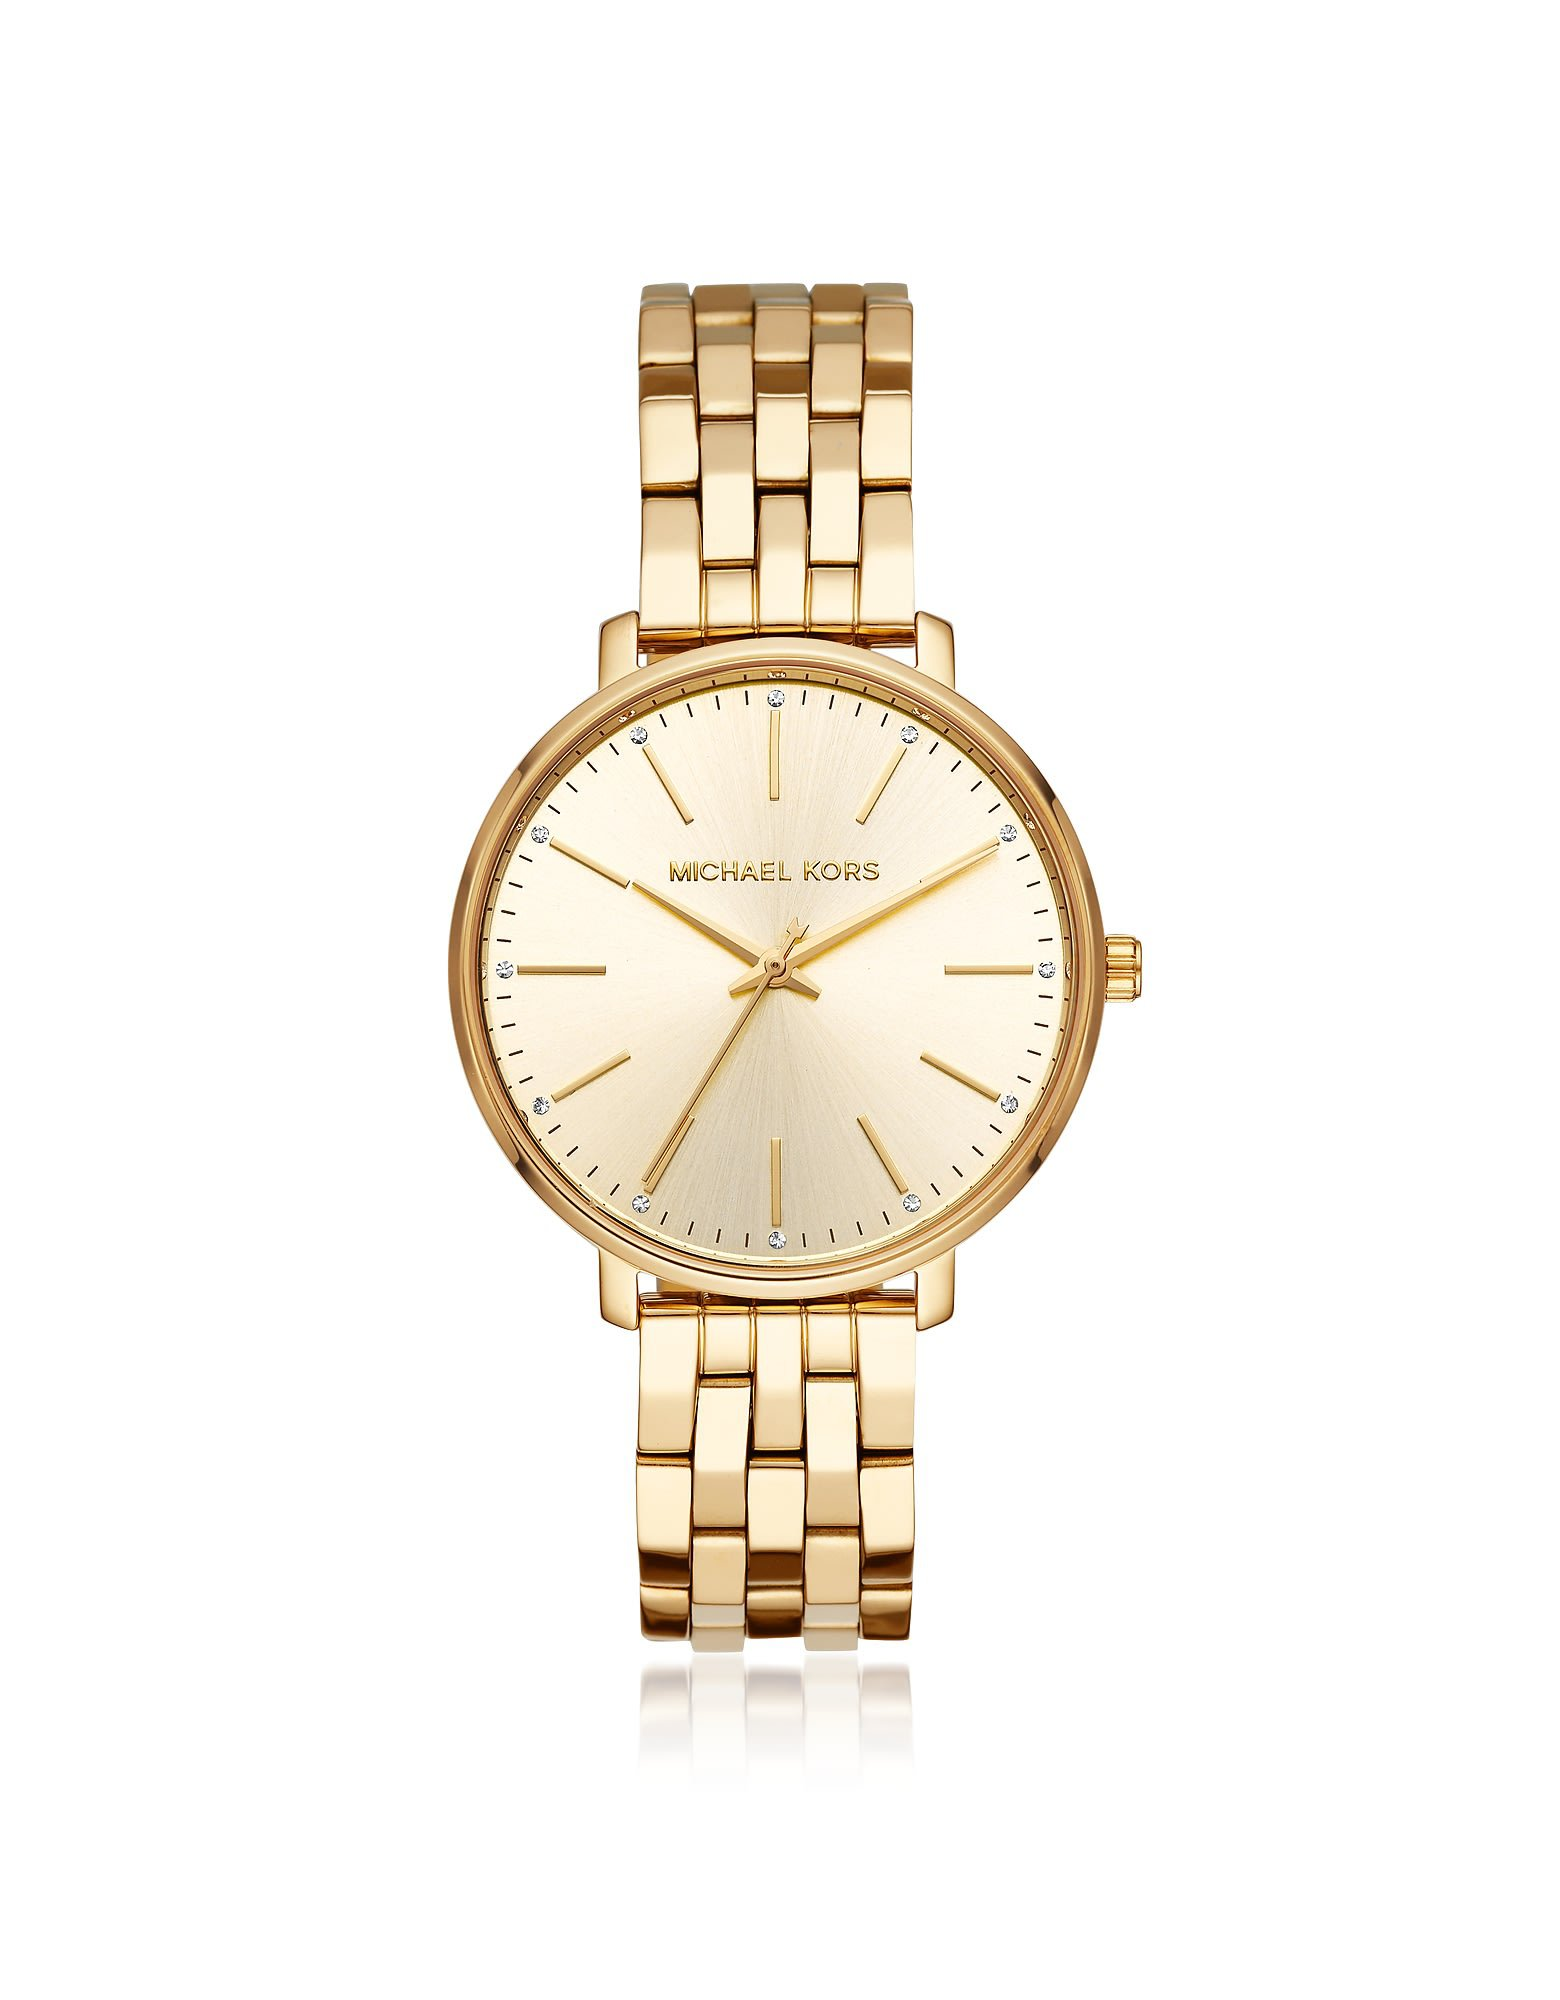 Michael Kors Pyper Gold Tone Watch